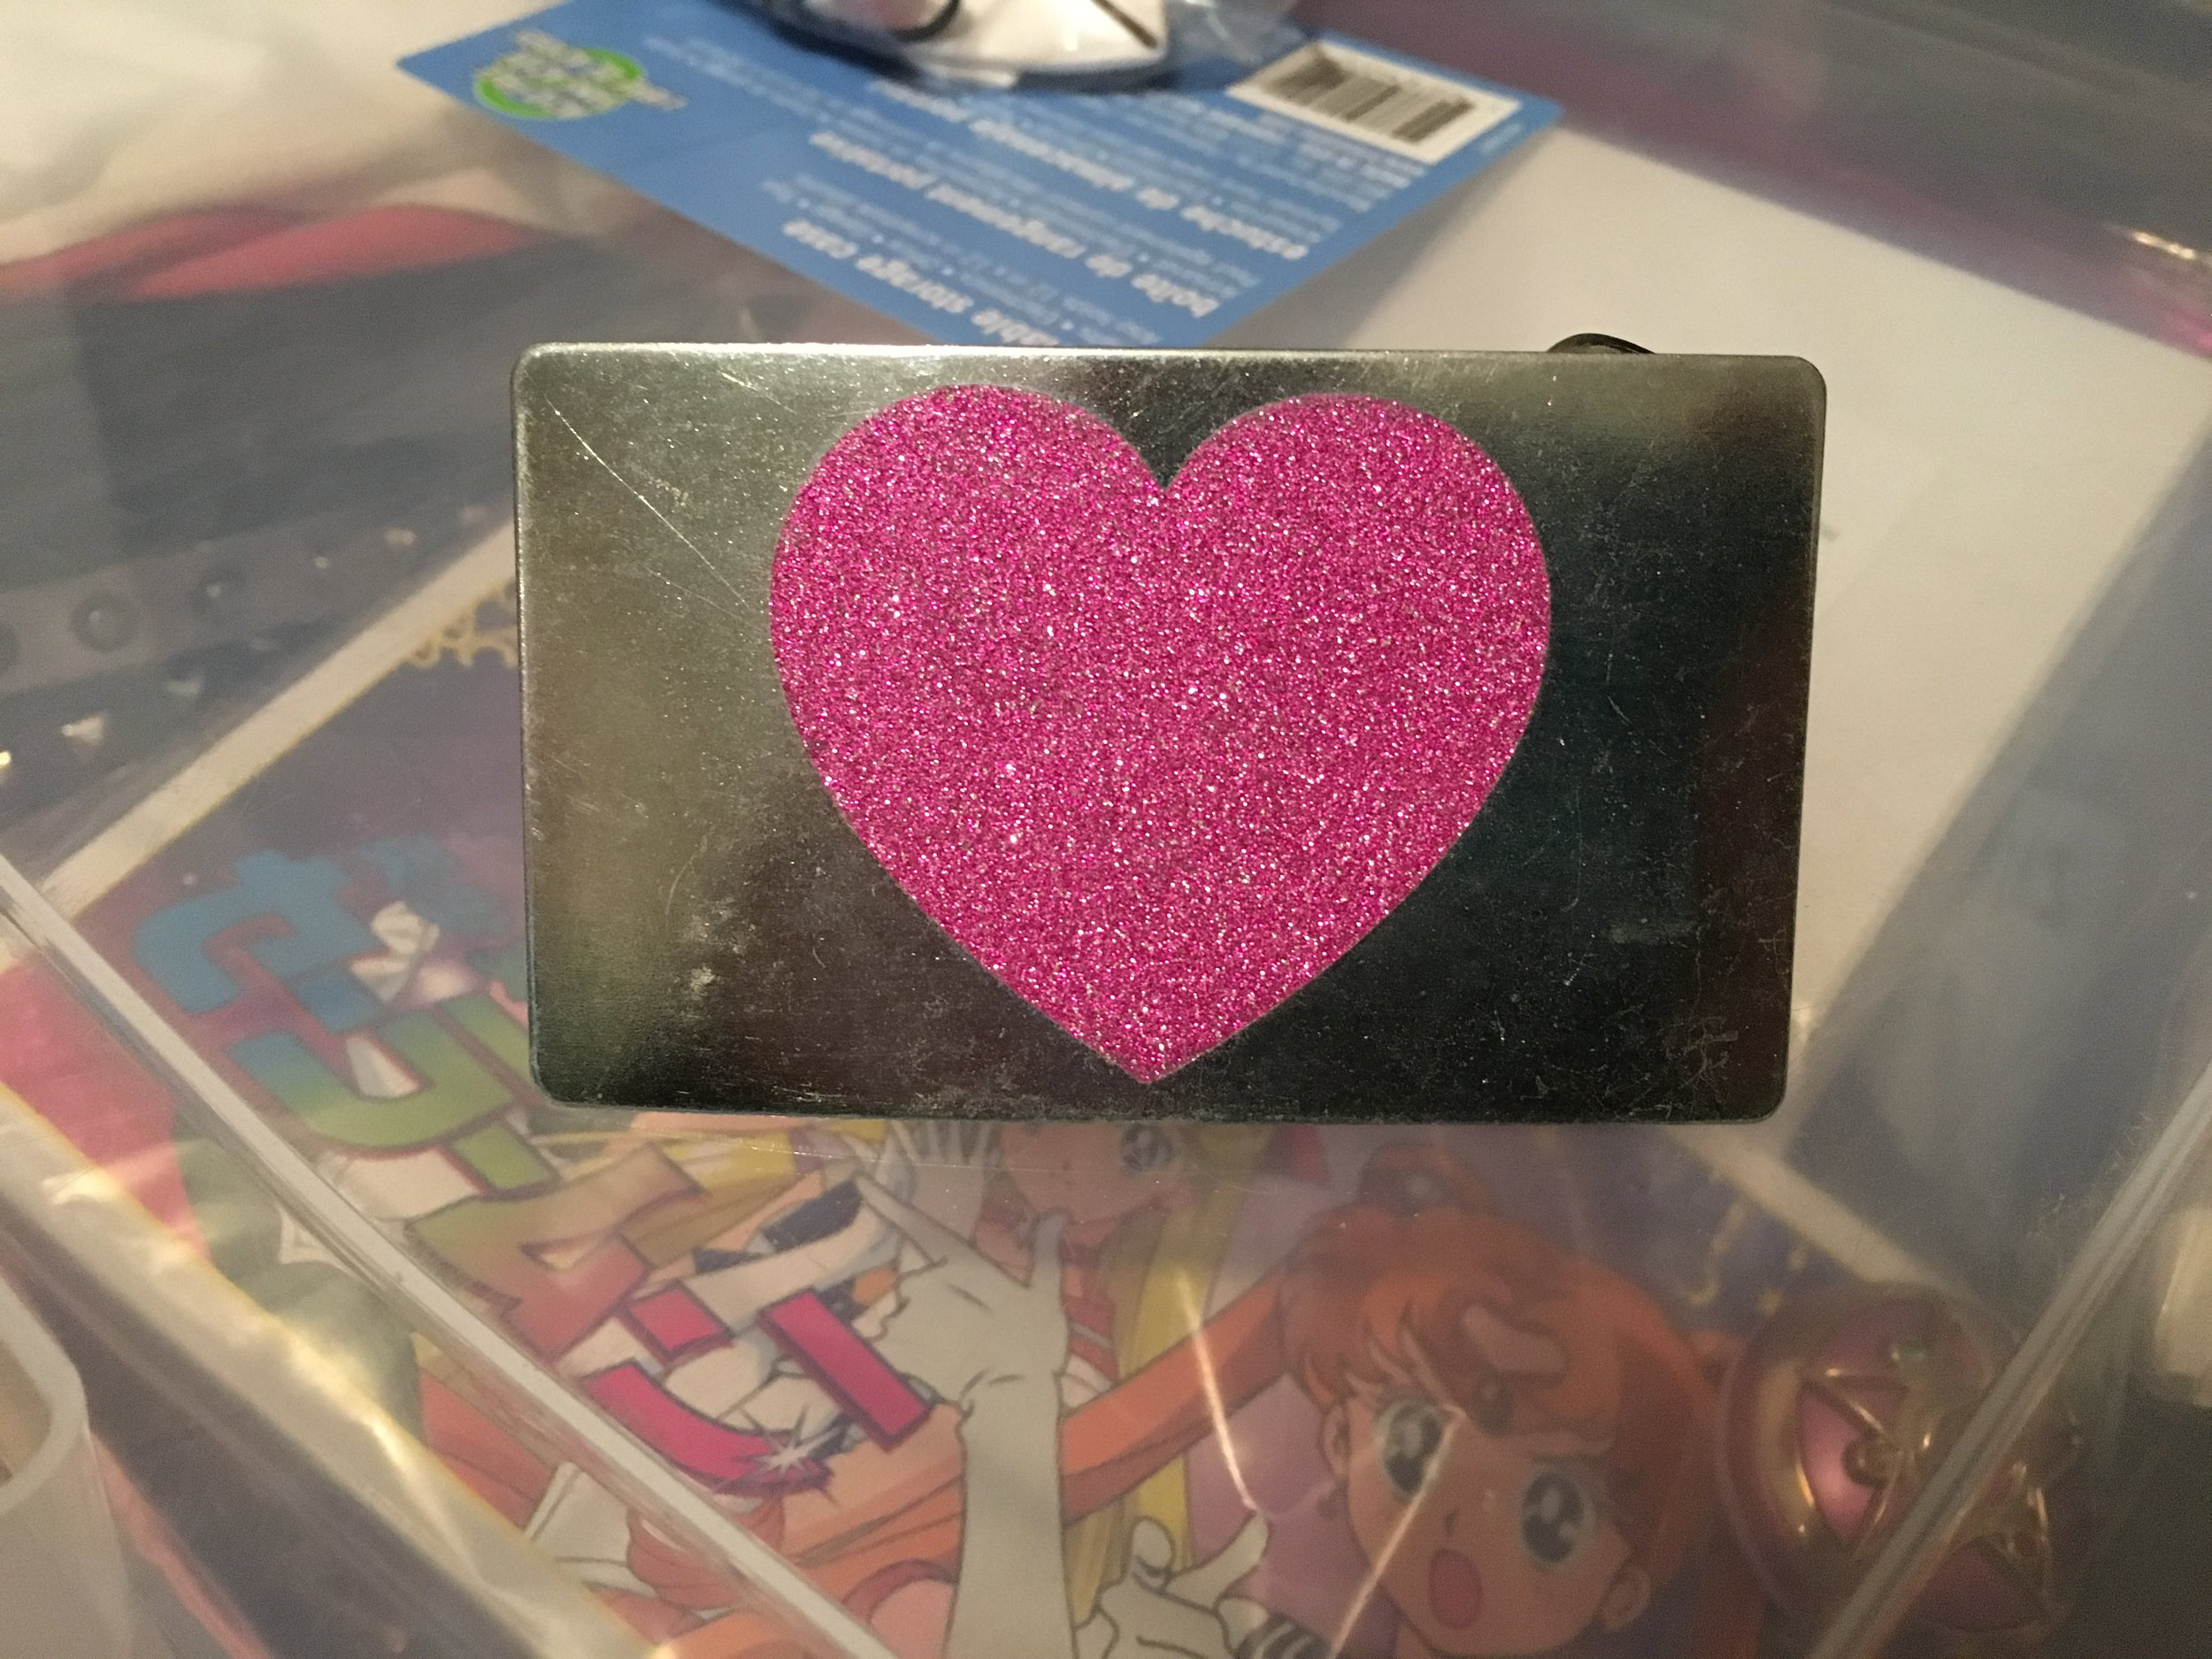 Glitter heart belt buckle